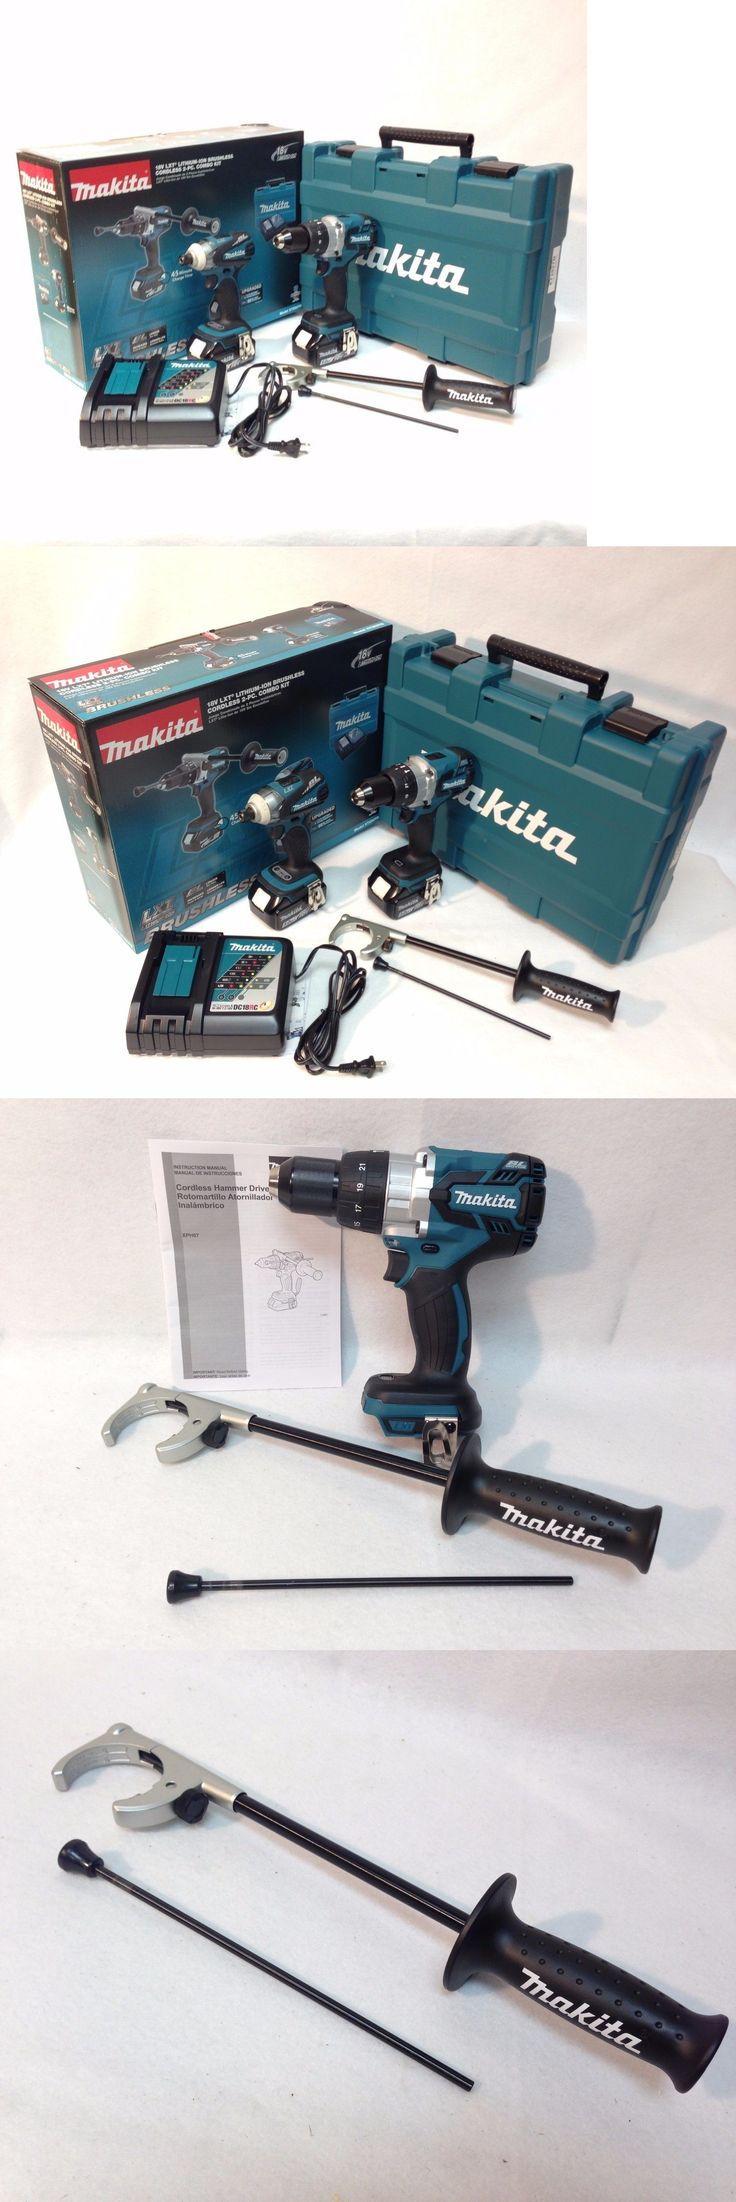 Combination Sets 177000: Makita Xt252tb Lxt 18V 5.0 Ah Li-Ion Brushless Hammer Drill And Impact Driver Kit -> BUY IT NOW ONLY: $358.97 on eBay!